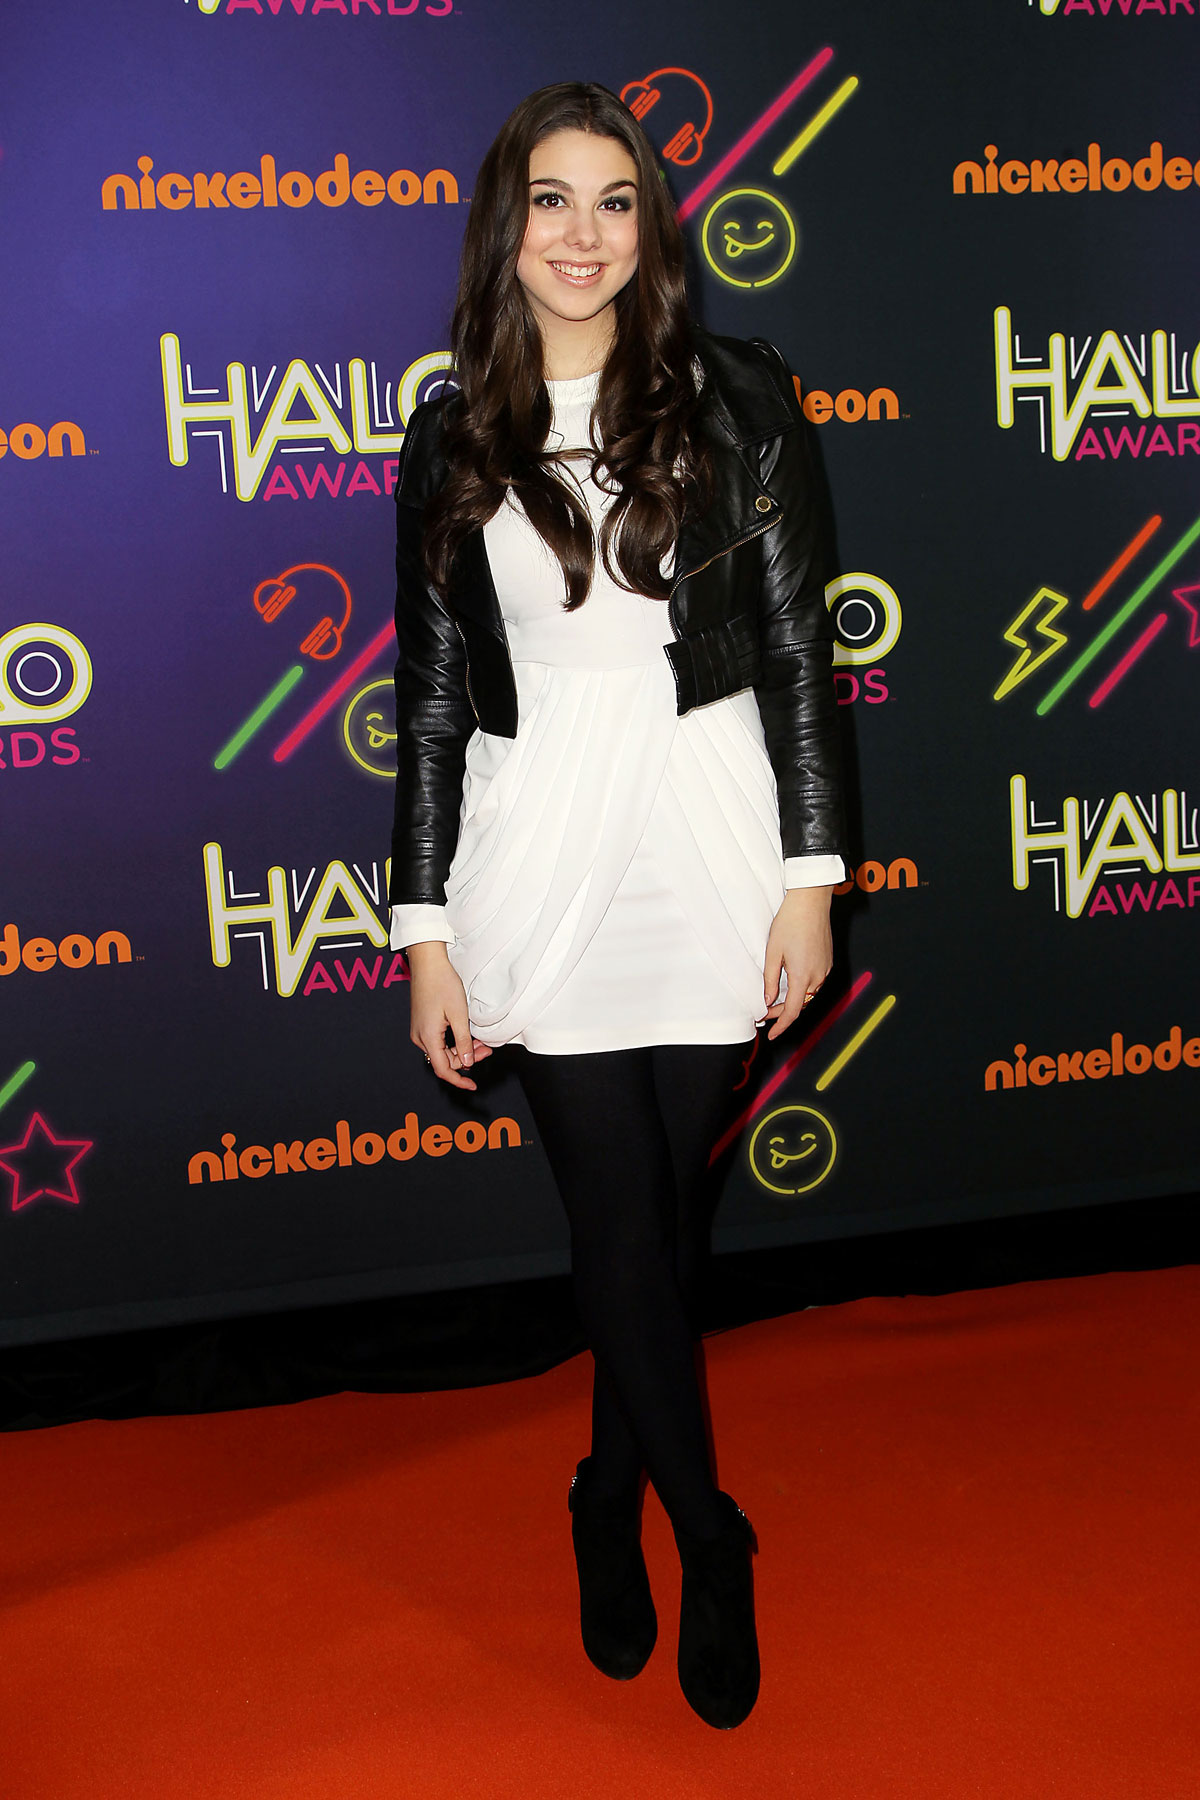 Kira Kosarin attends 2014 Nickelodeon HALO Awards